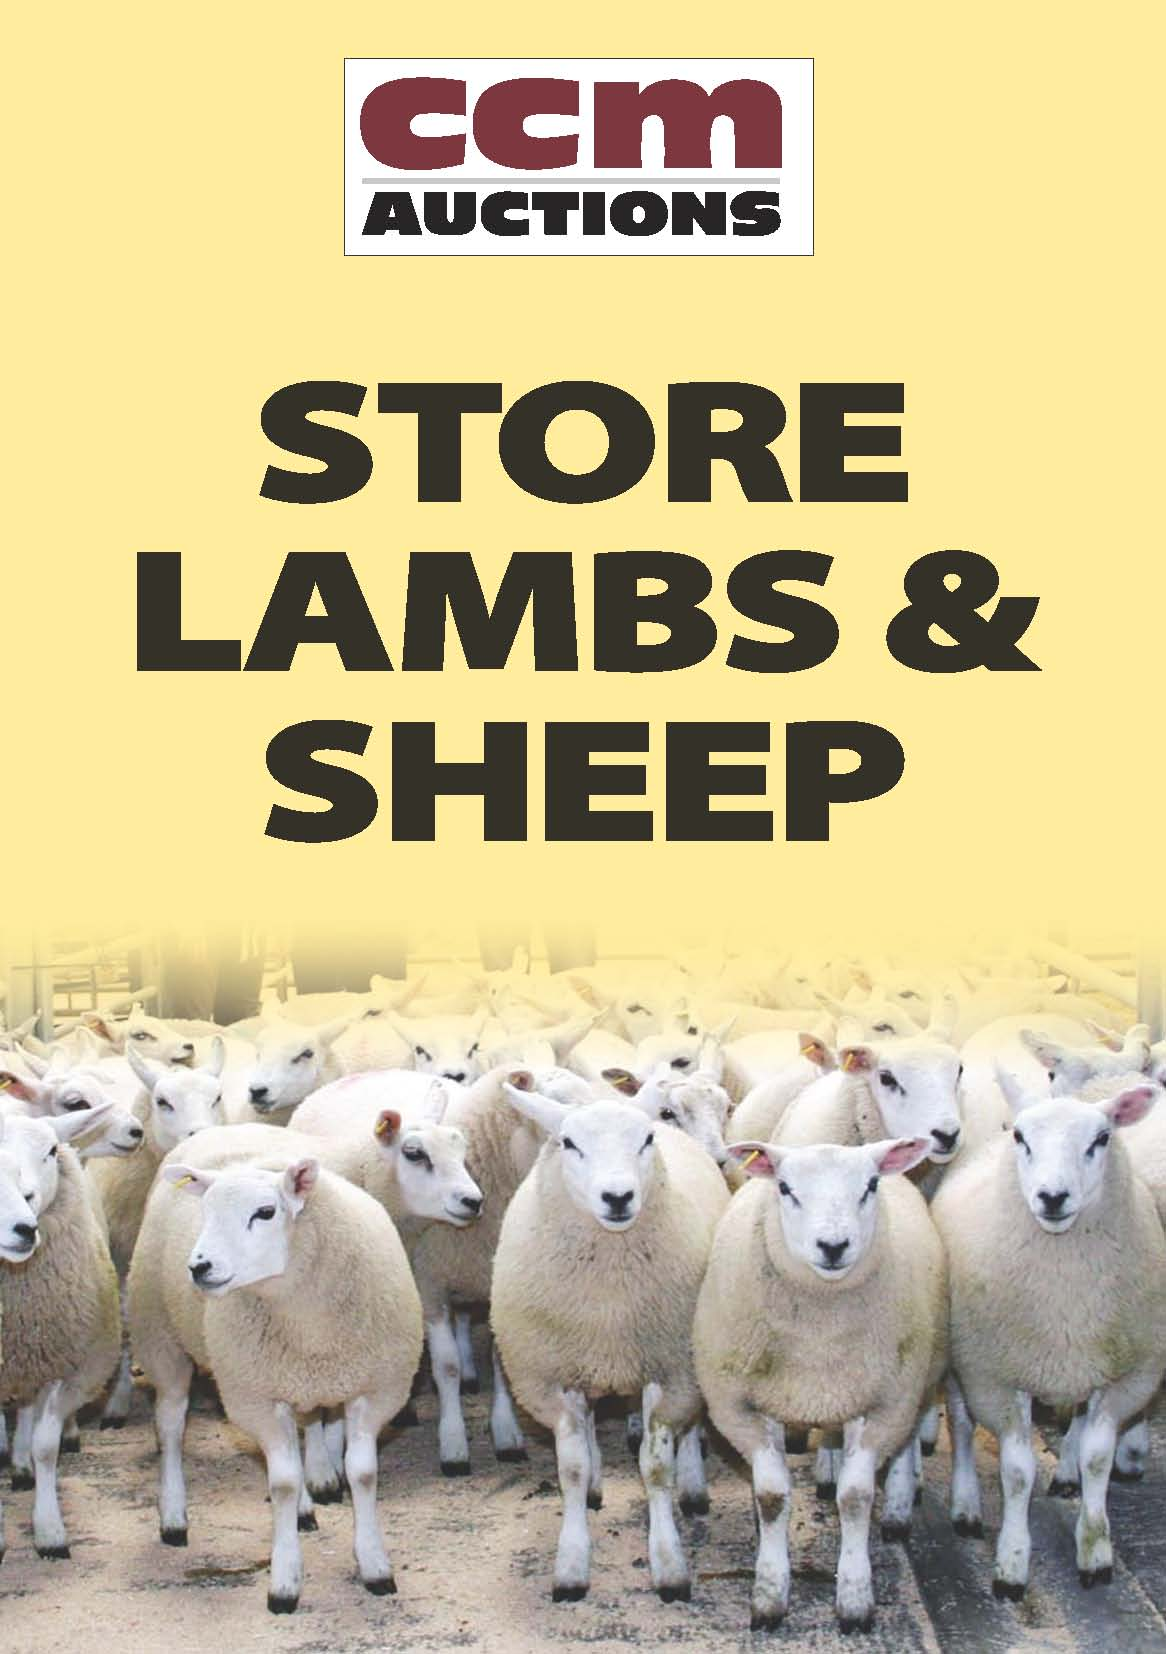 STORE LAMBS & BREEDING SHEEP - WEDNESDAY 7TH FEBRUARY 2018